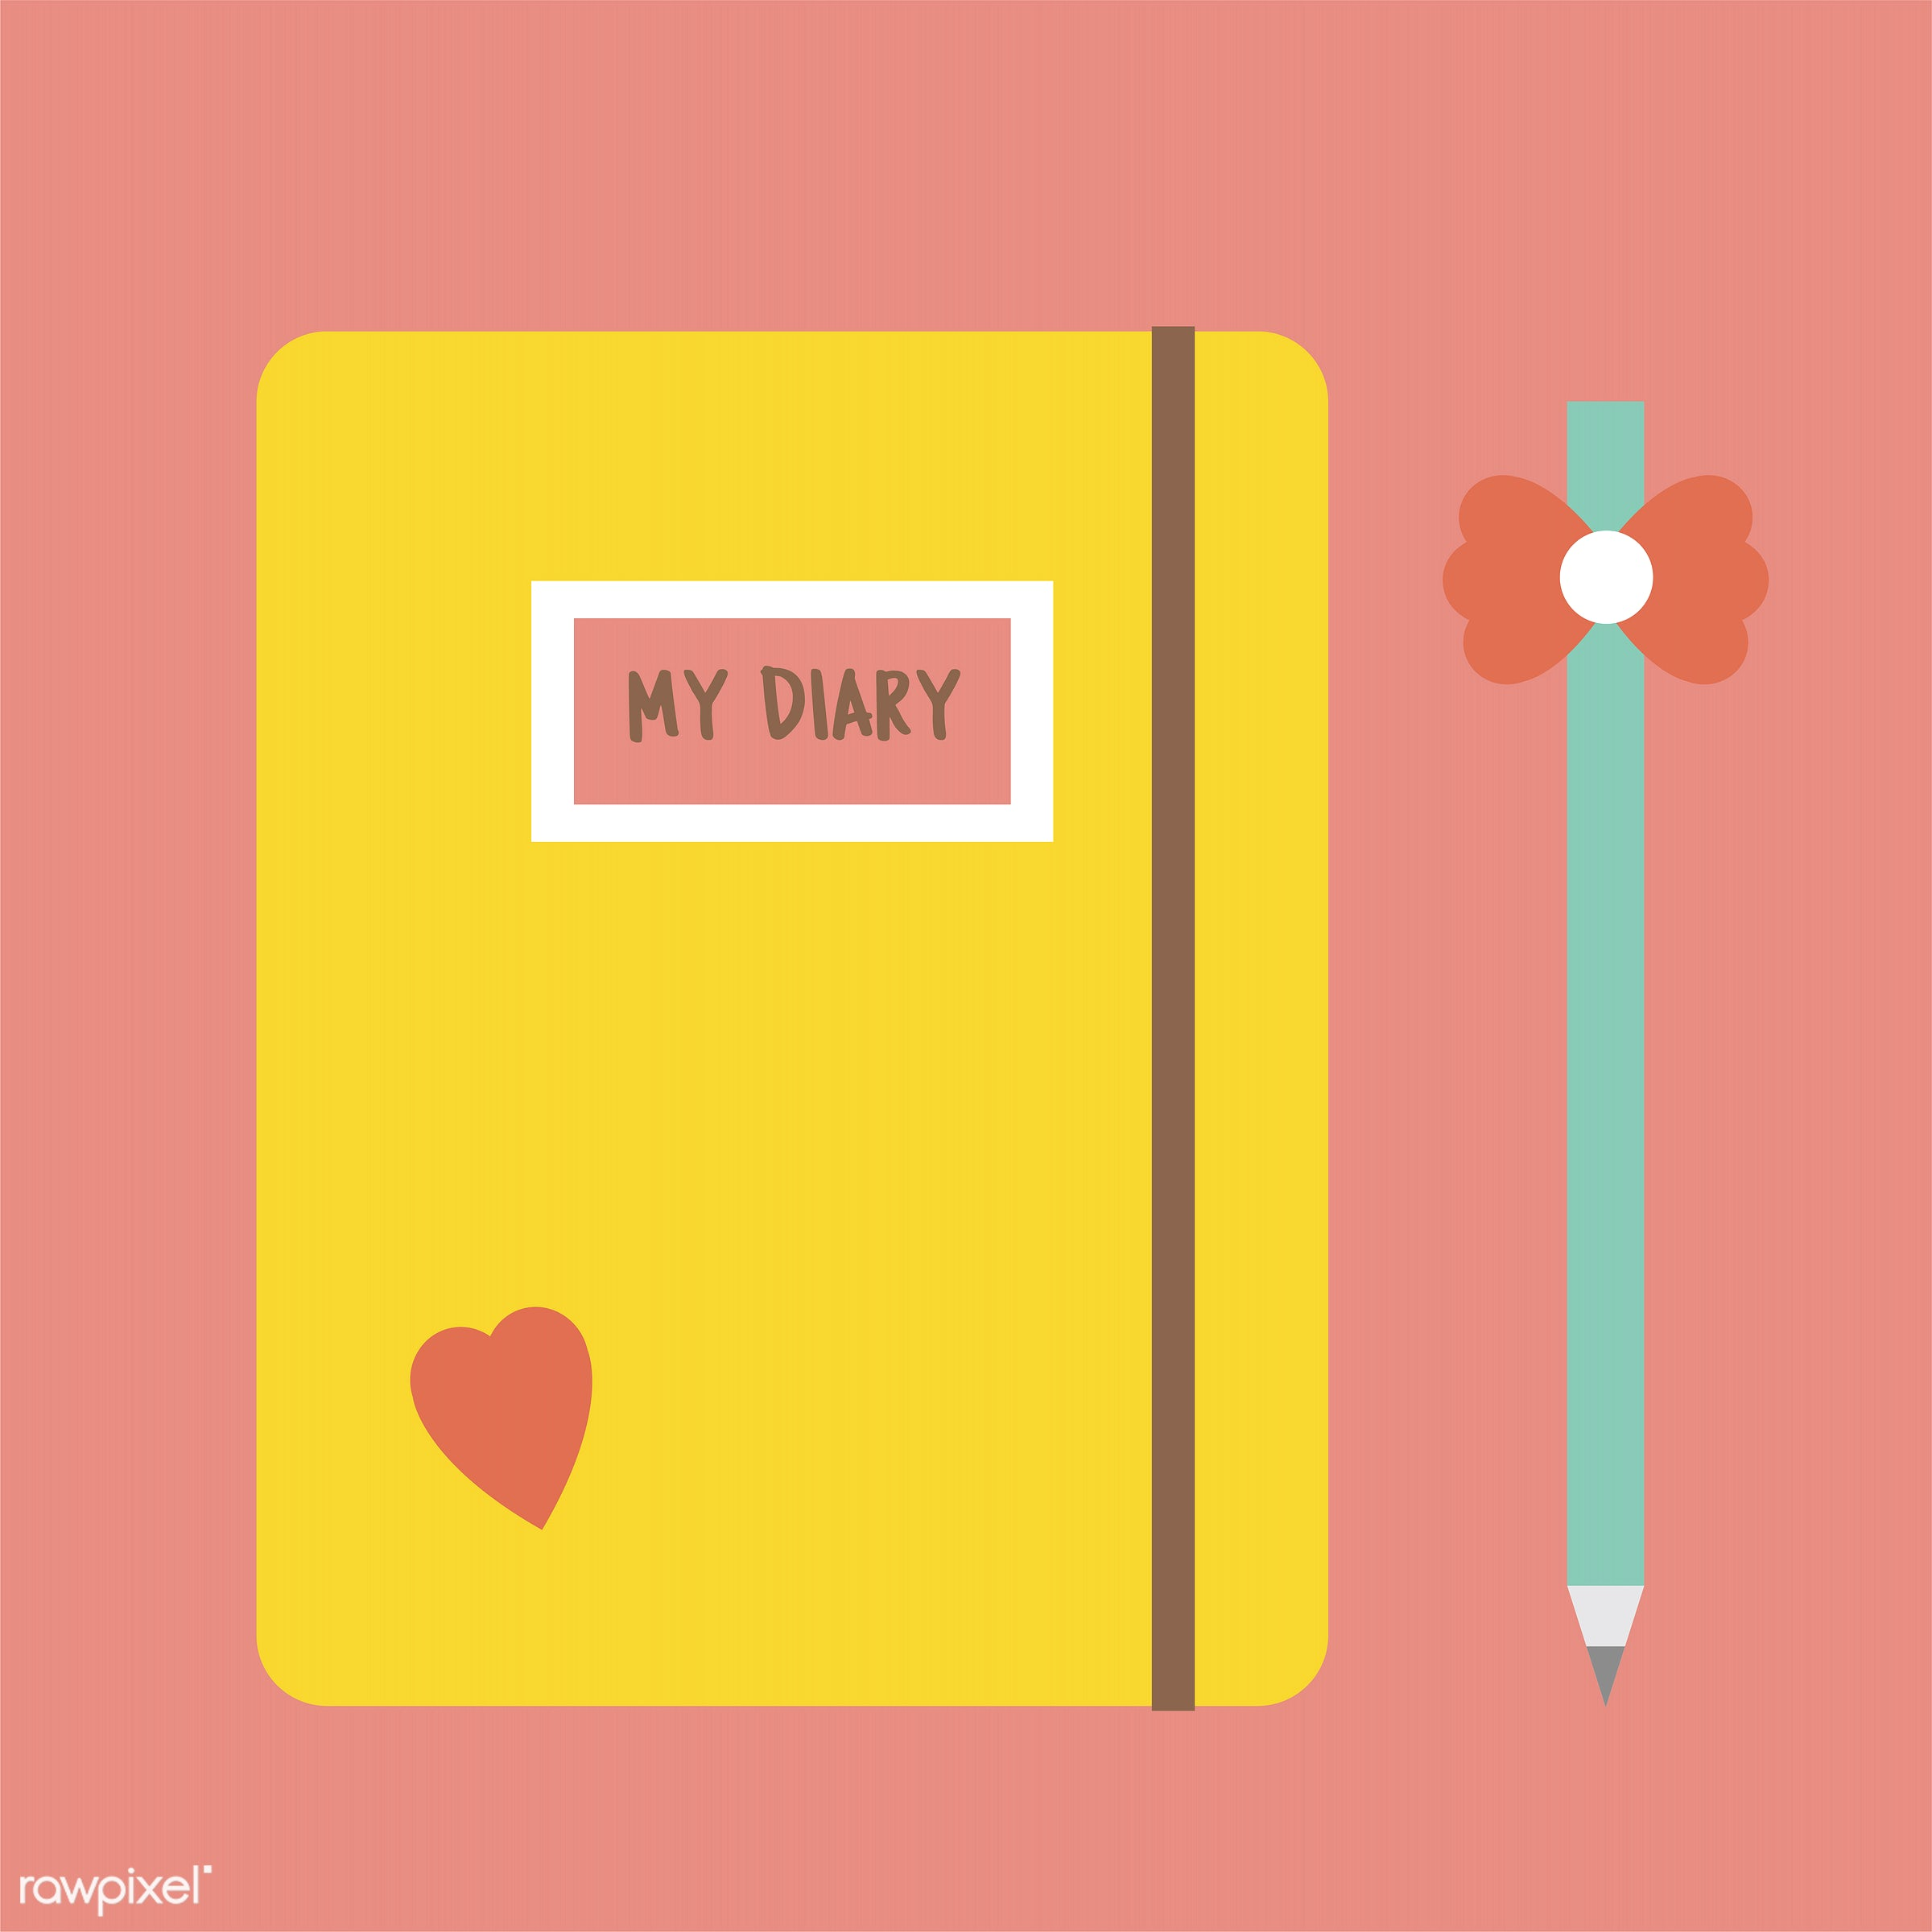 vector, illustration, graphic, cute, sweet, girly, pastel, diary, notebook, notes